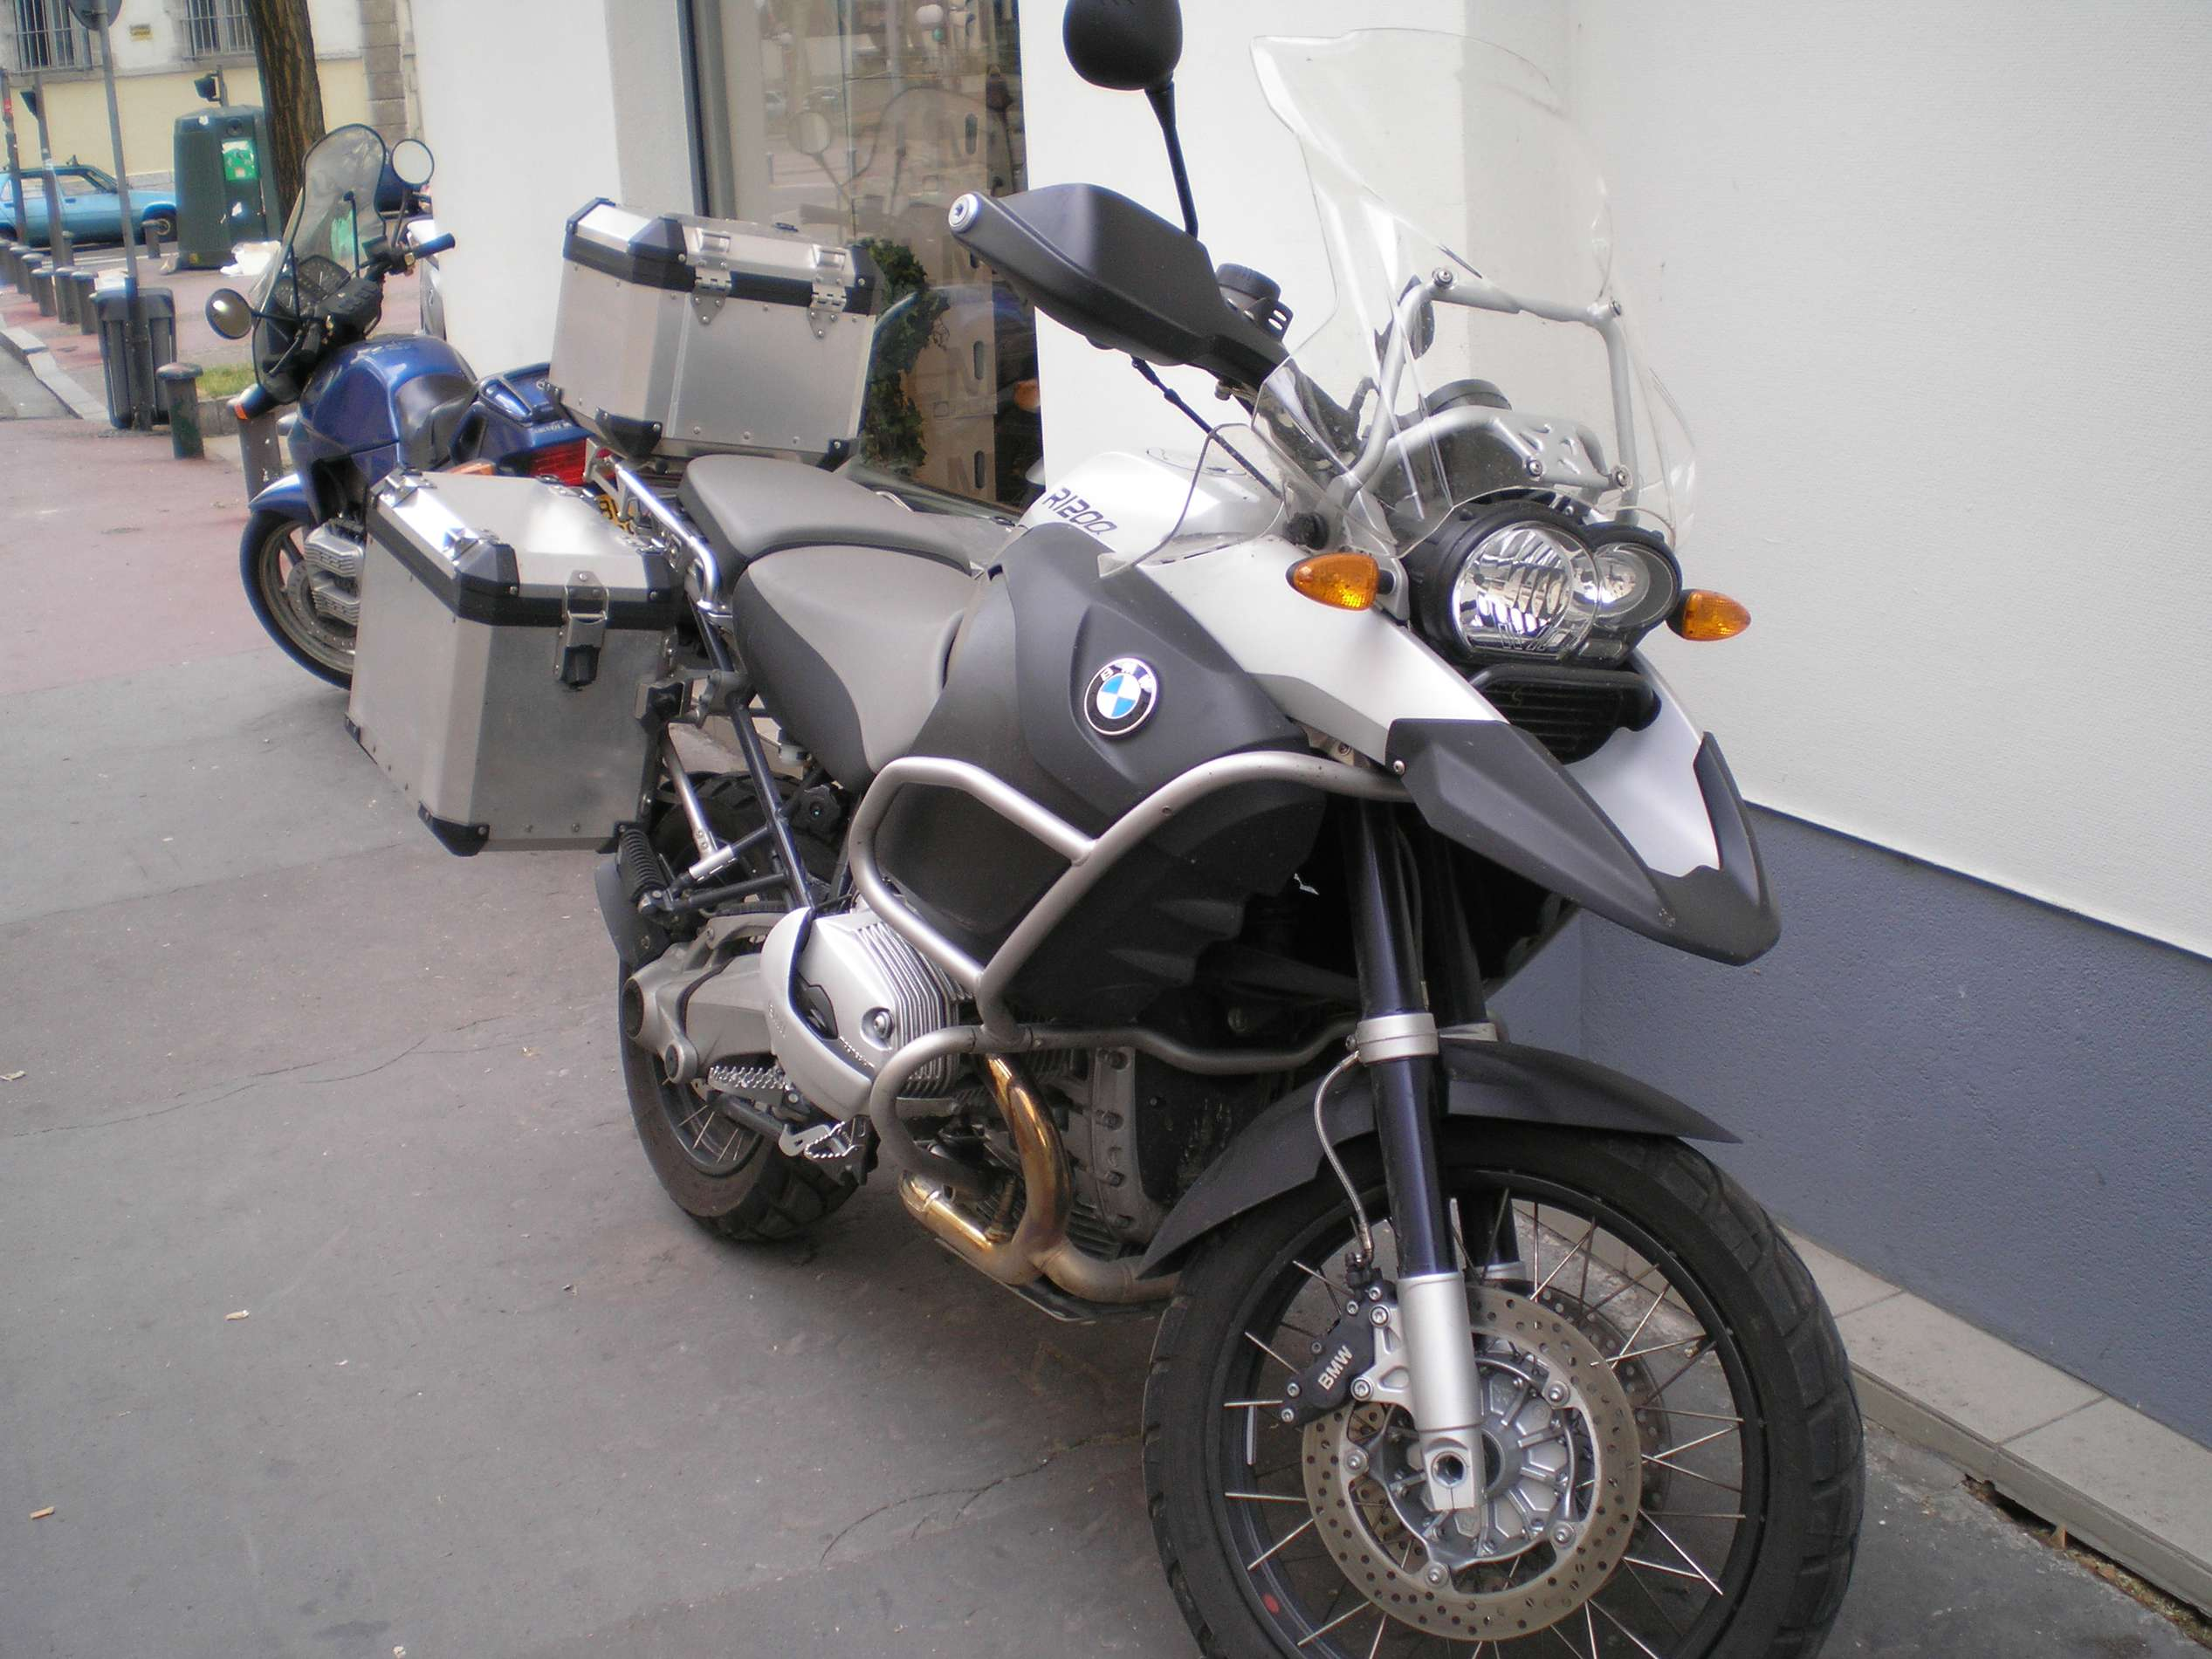 BMW R 1200 GS Adventure #7488234